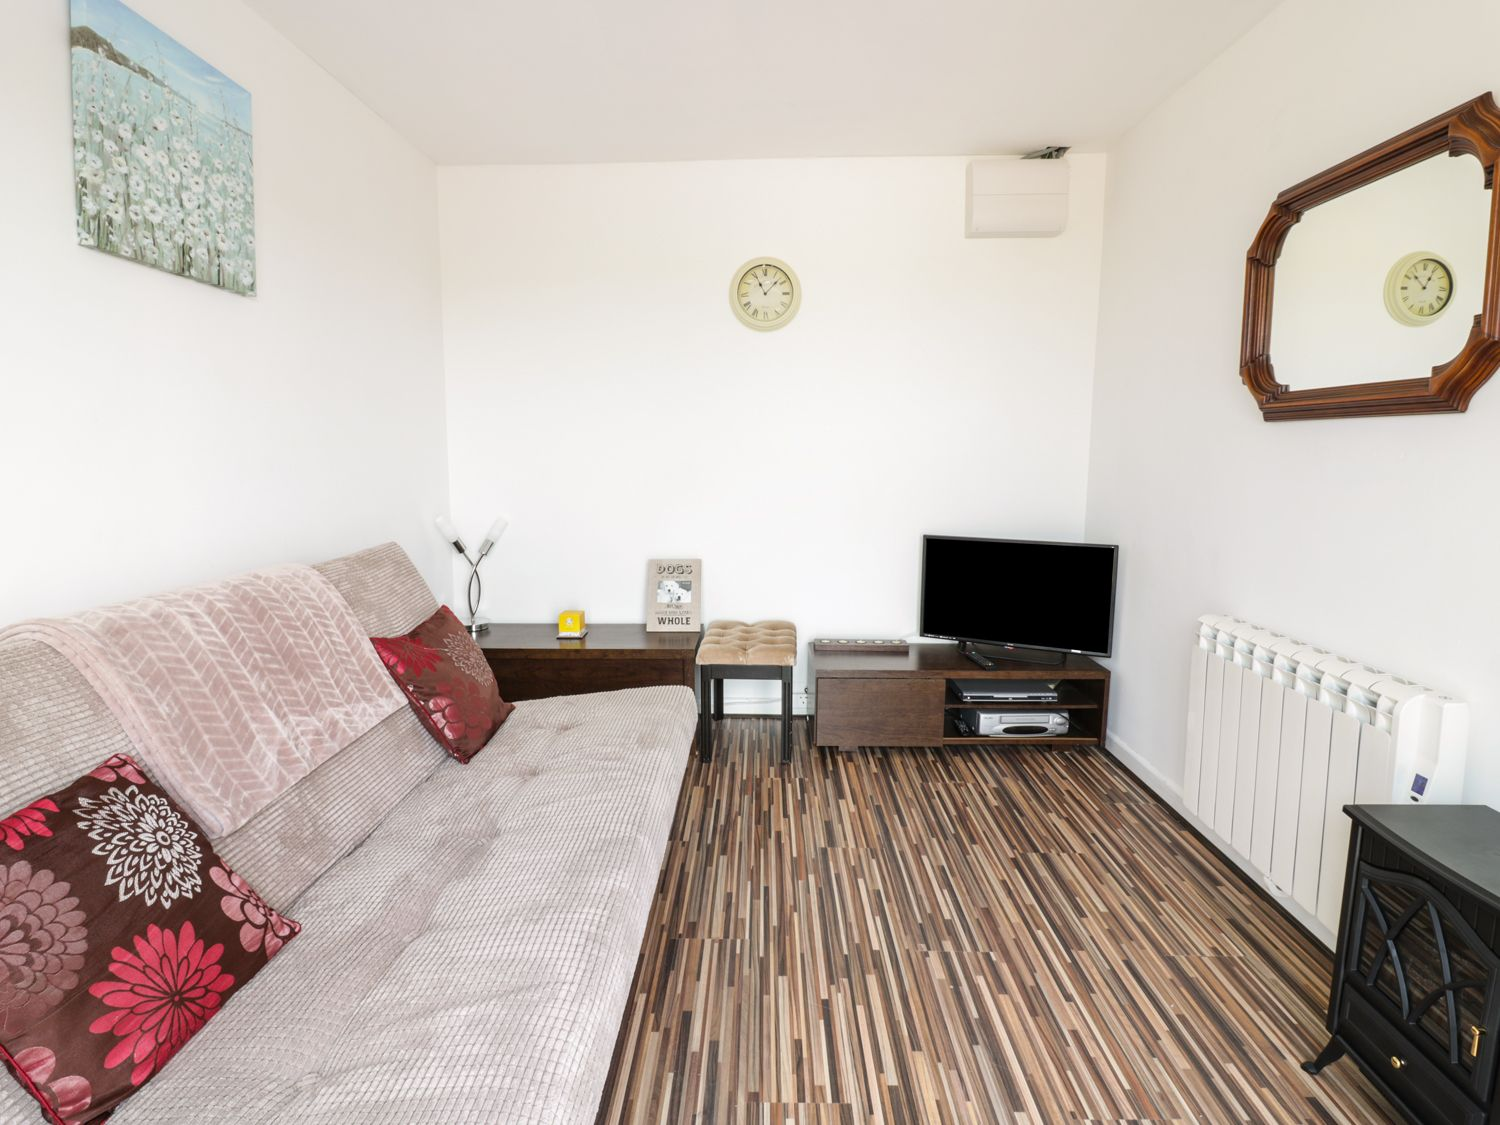 Hegarty's Cottage in Mawgan Porth near Newquay - sleeps 4 people